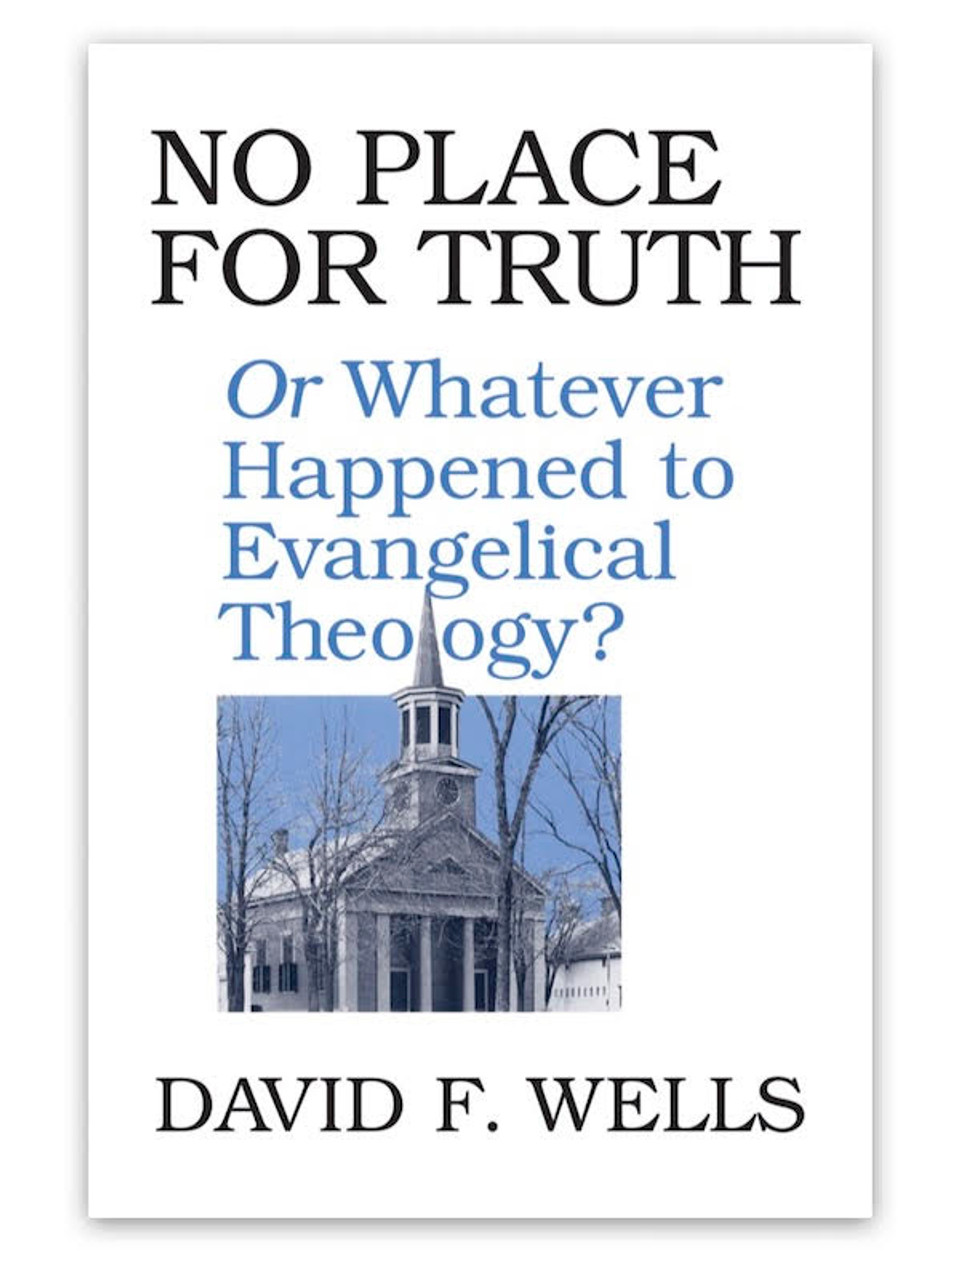 No Place for Truth: Or Whatever Happened to Evangelical Theology? (Paperback)